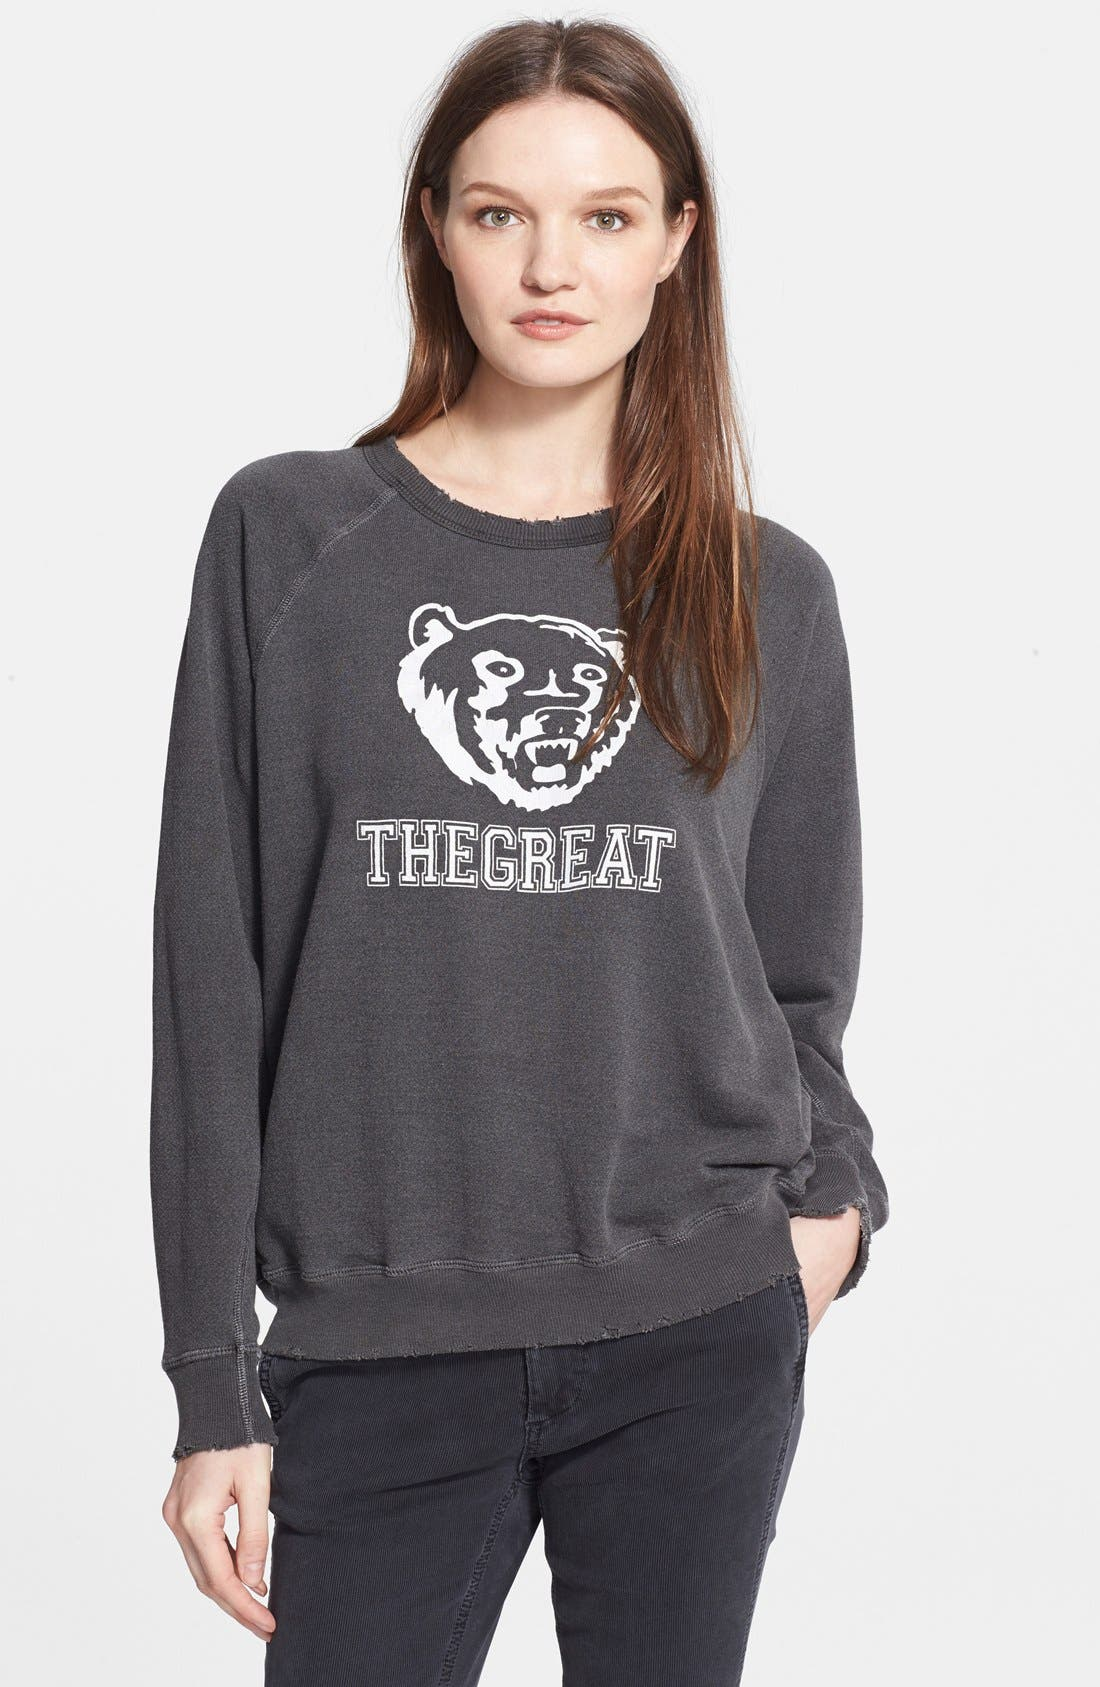 THE GREAT., 'The Bear' Graphic Sweatshirt, Main thumbnail 1, color, 020